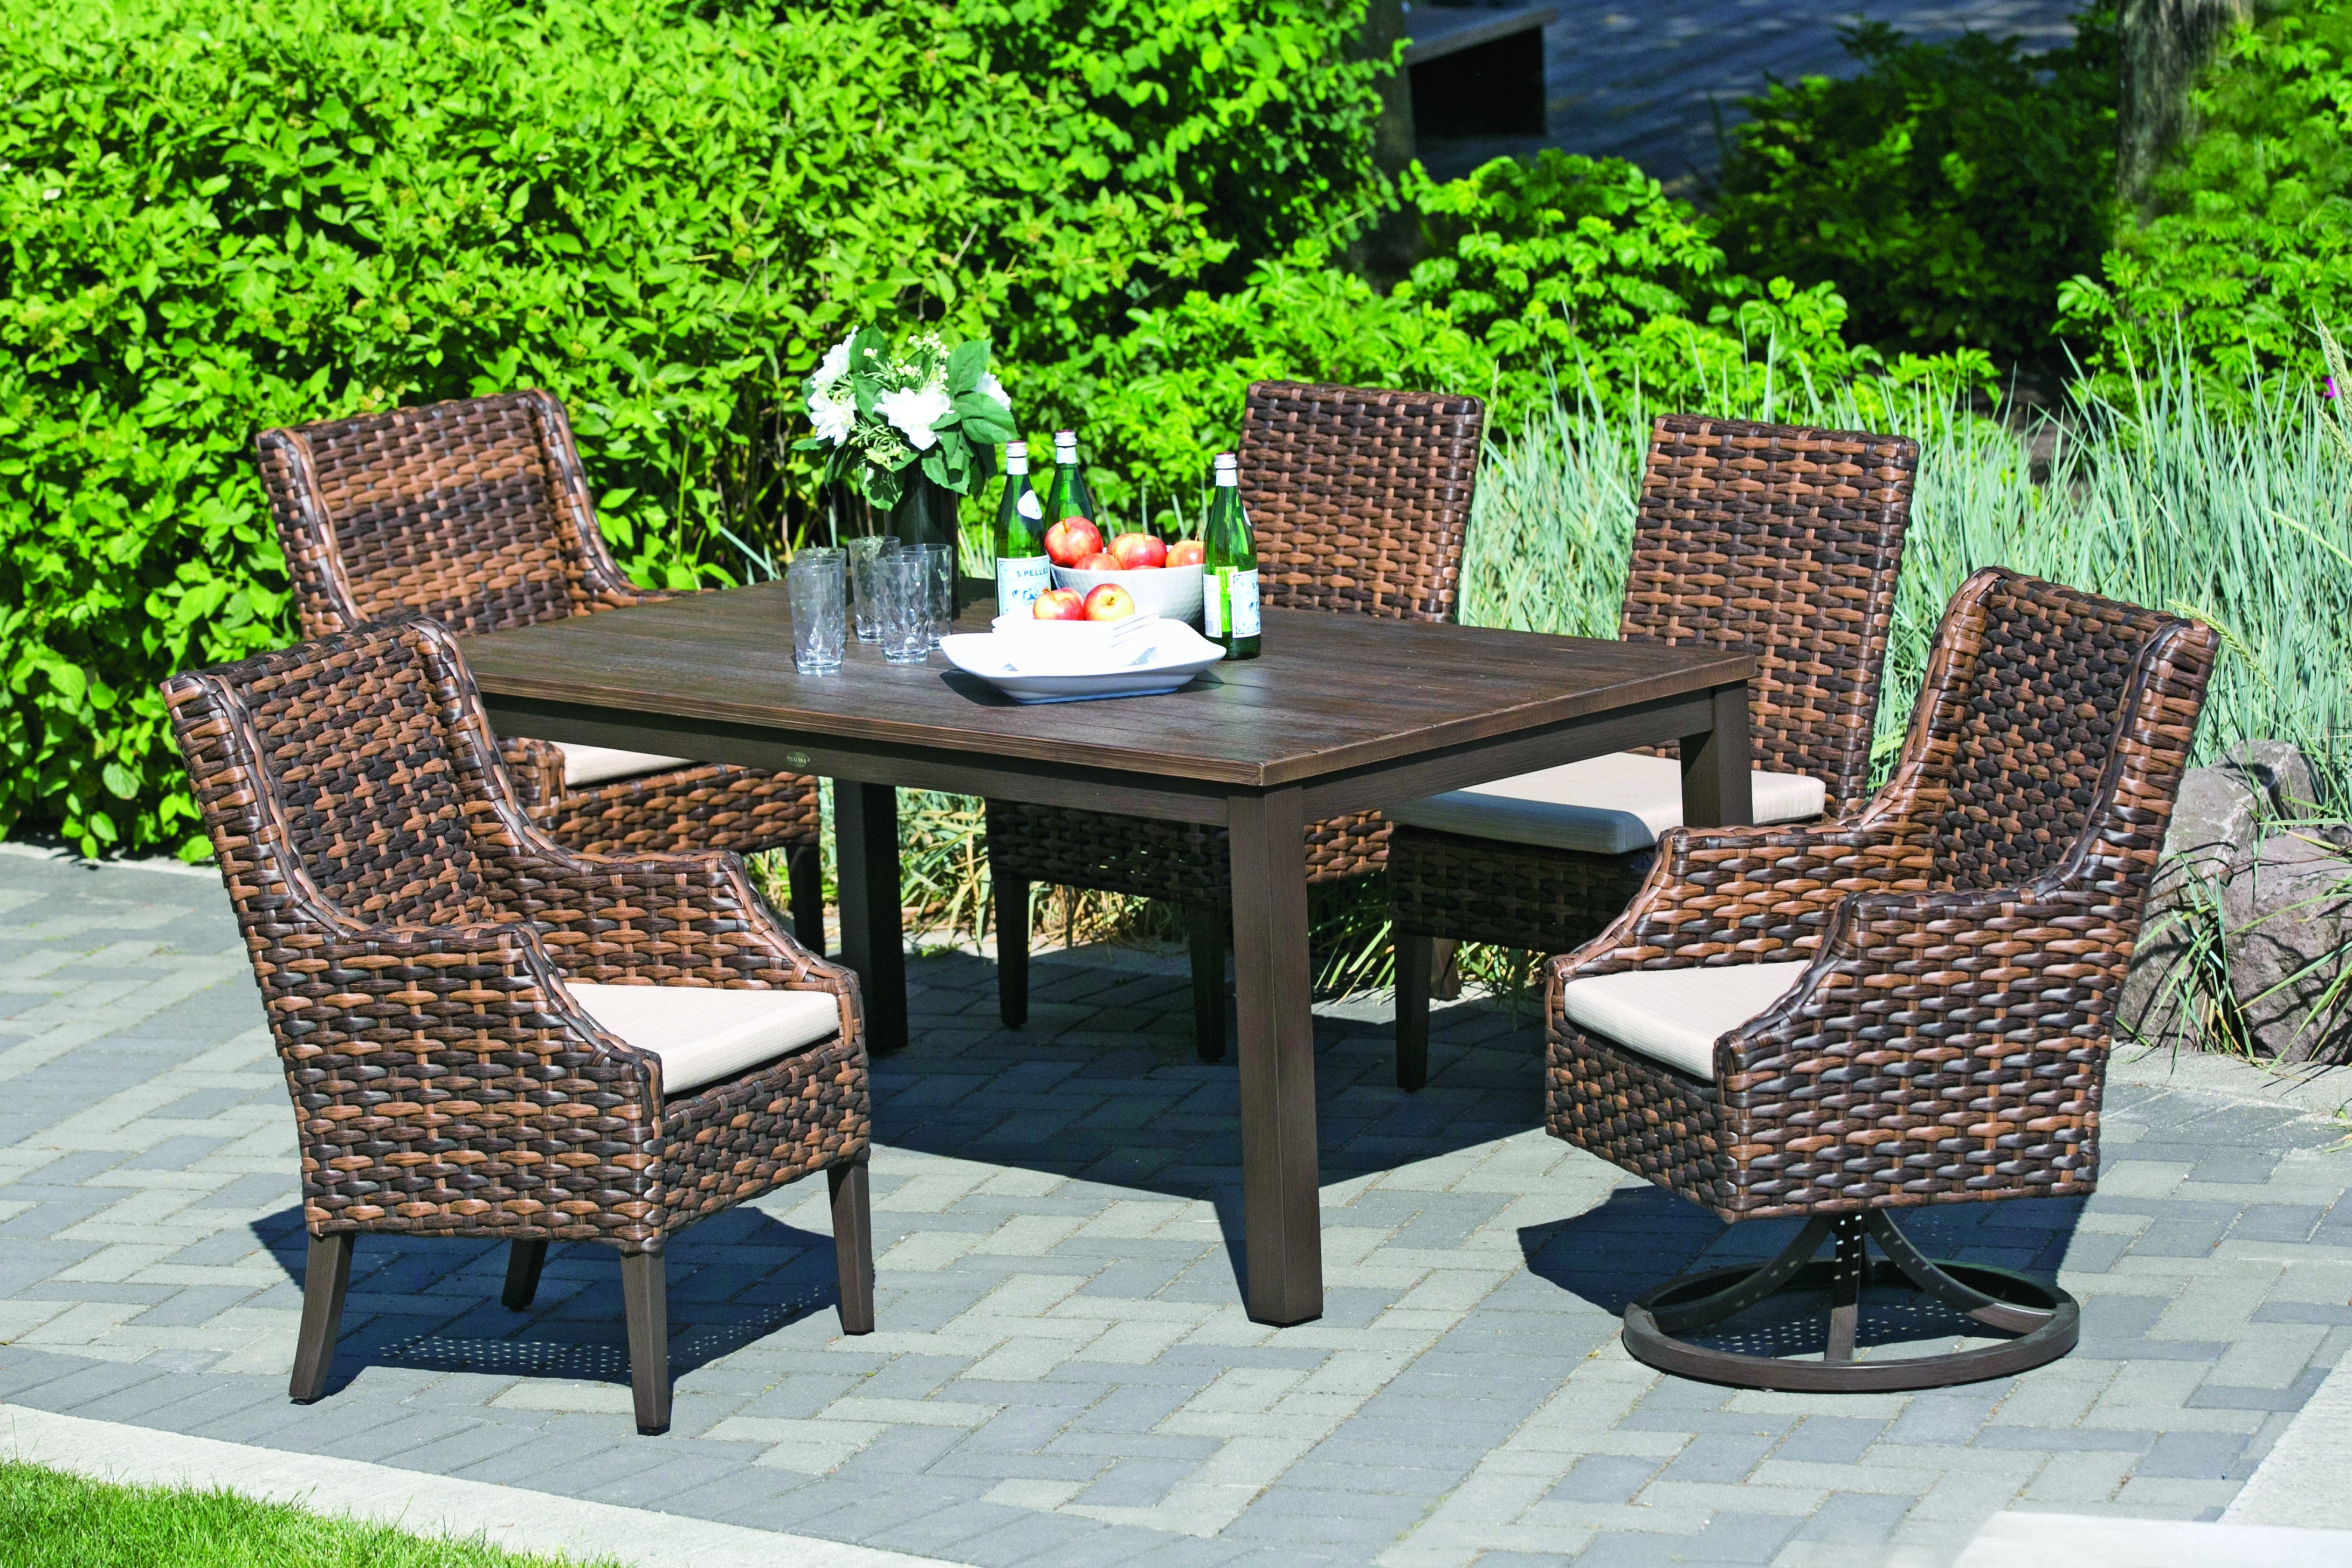 Four square rattan chairs around a dark wood table with one rattan swivel chair, Ratana